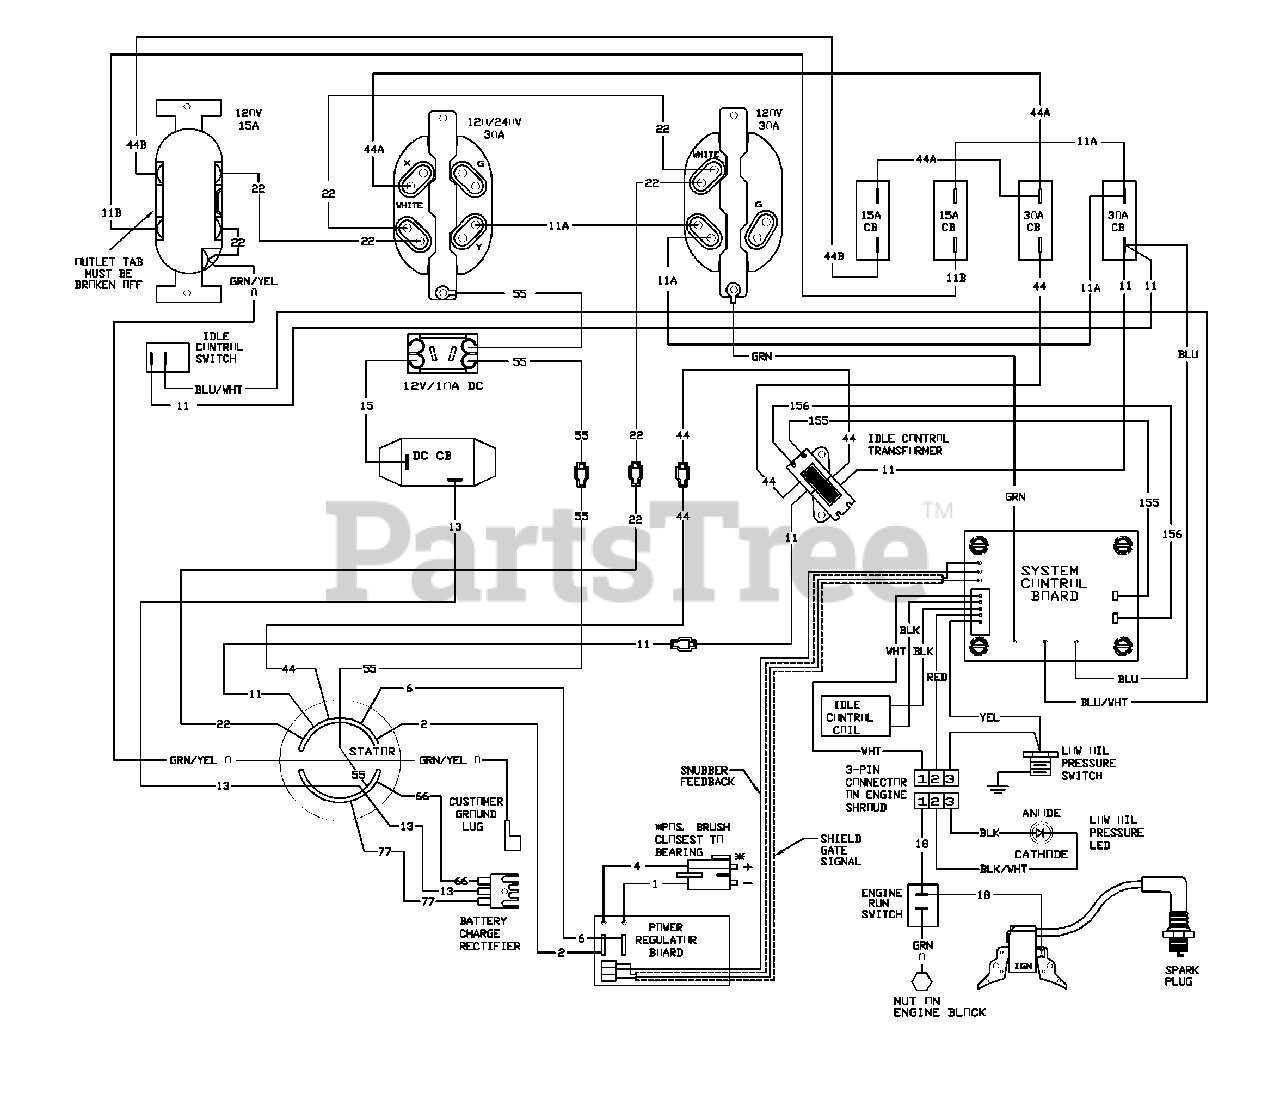 Generac 6500GCX (1788-0) - Generac 6,500 Watt Portable Generator Wiring  Diagram Parts Lookup with Diagrams | PartsTreePartsTree